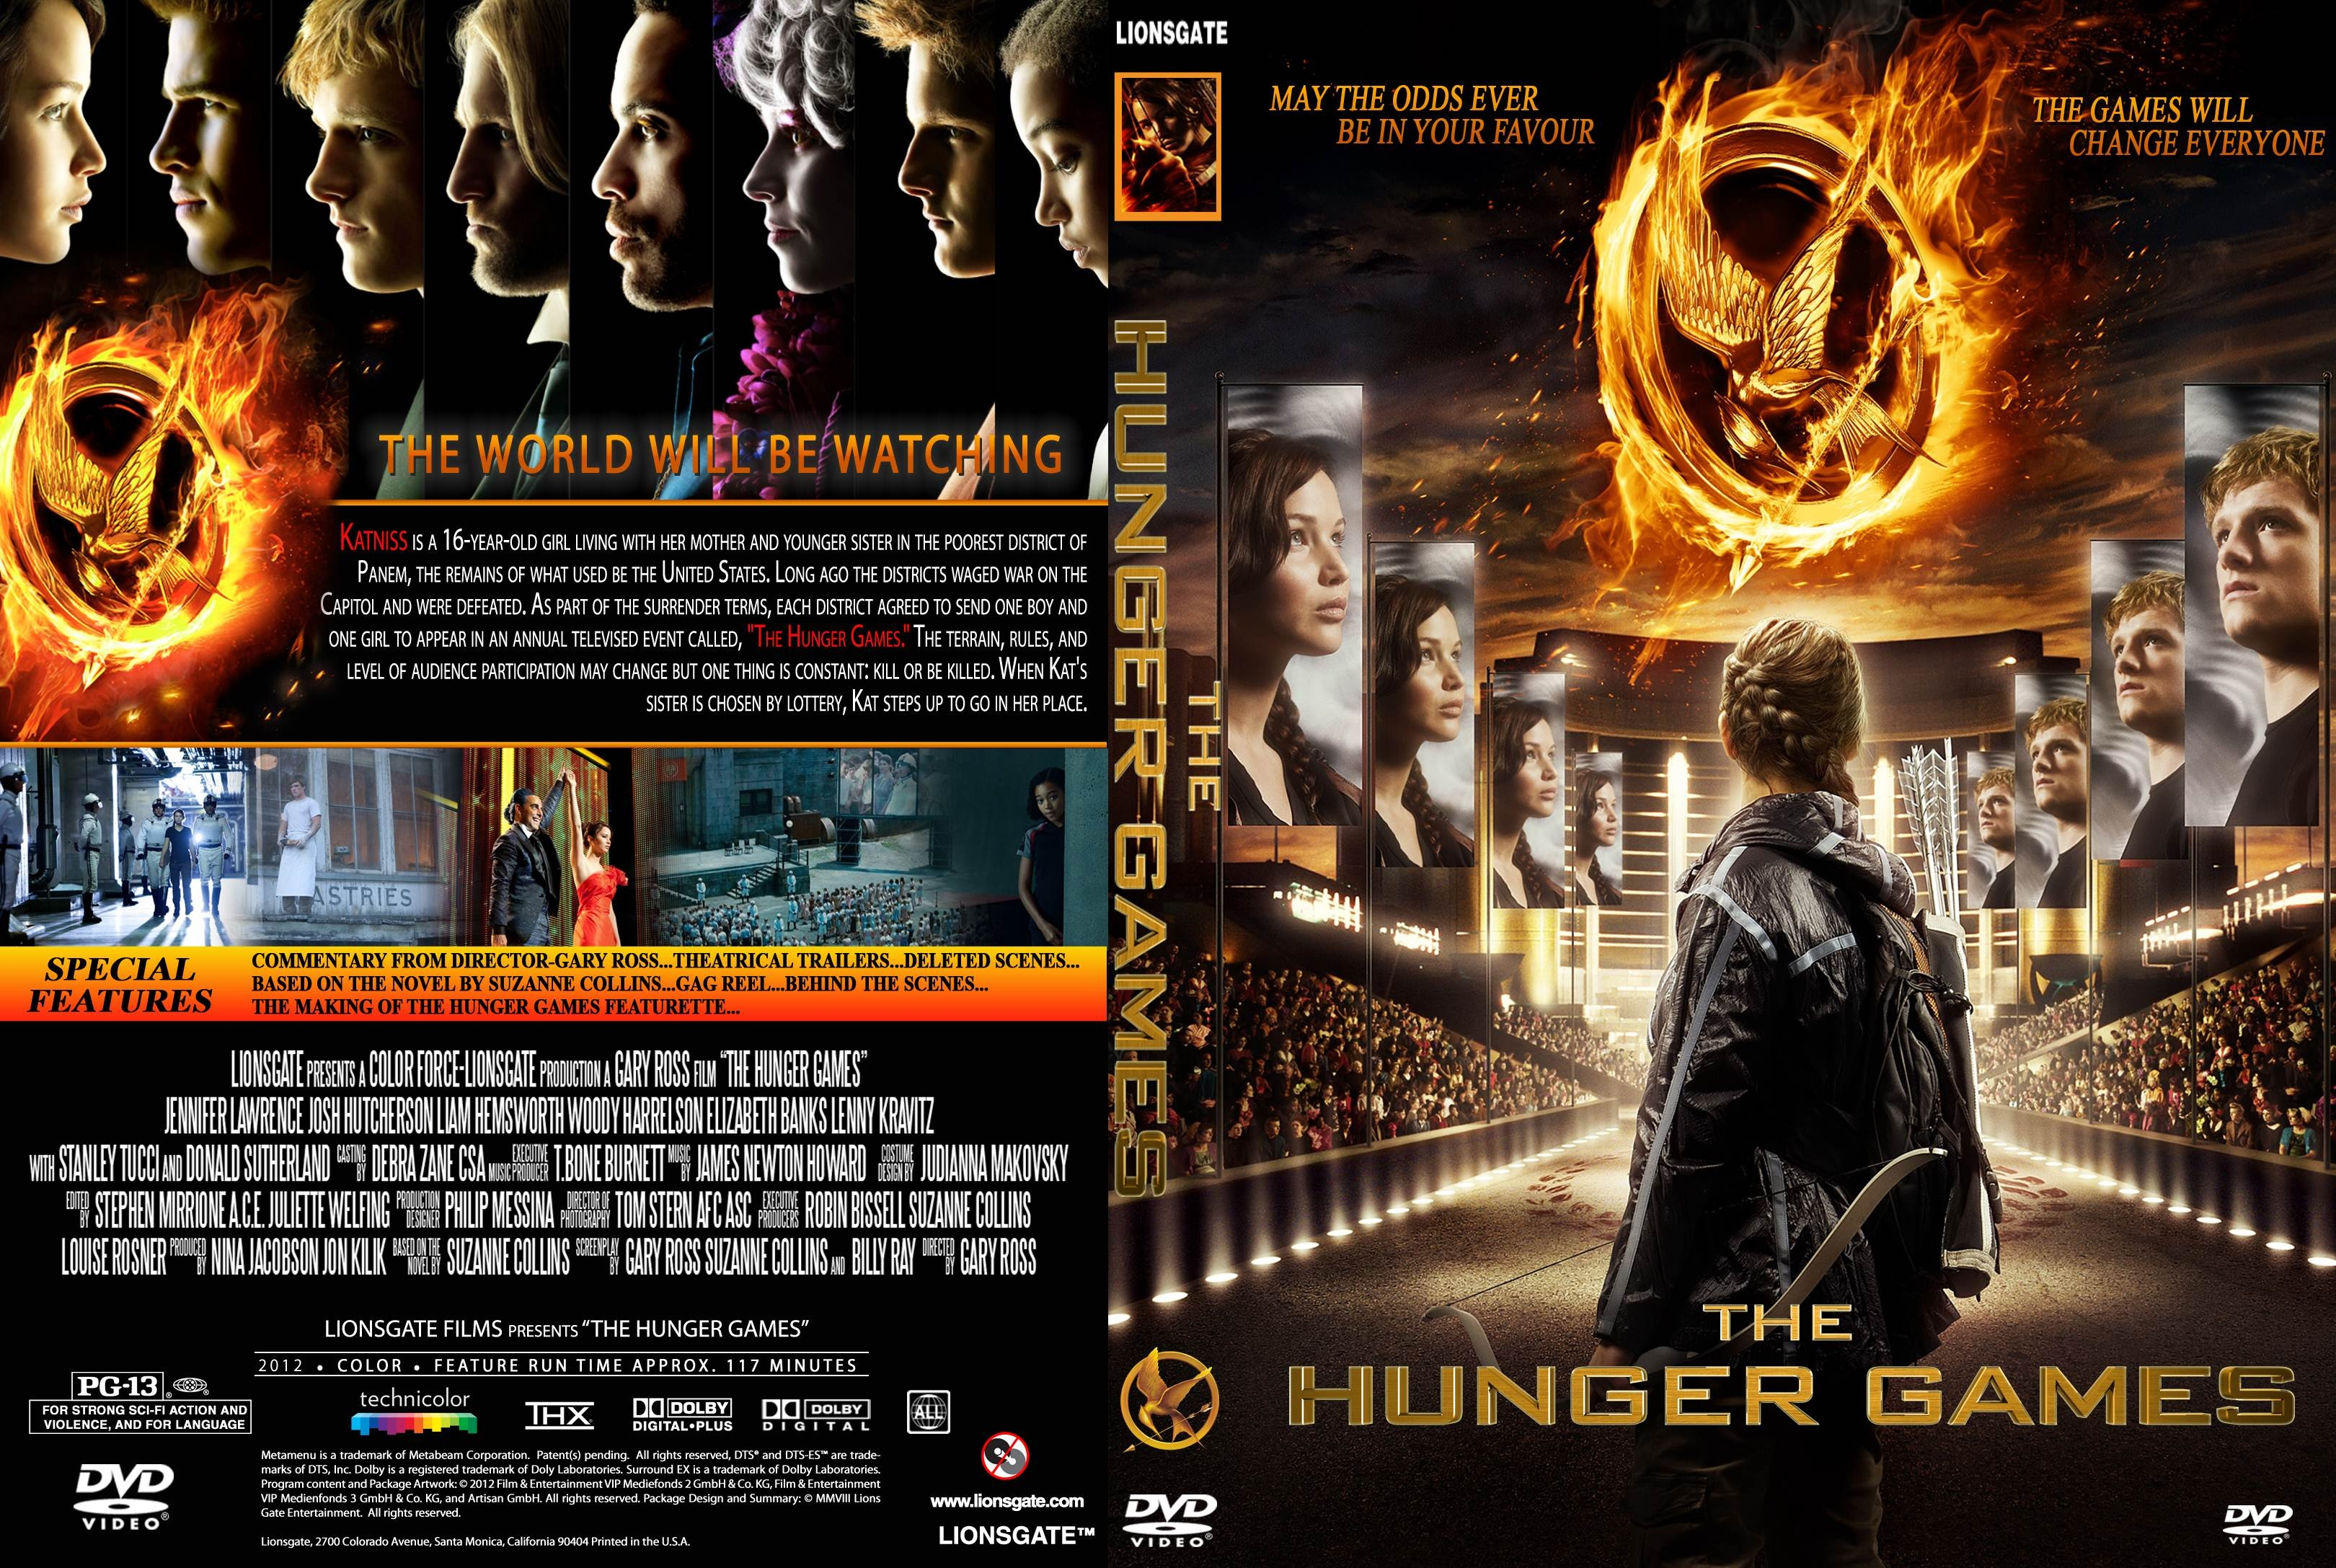 an analysis of the feminist film theory in the hunger games a movie by gary ross